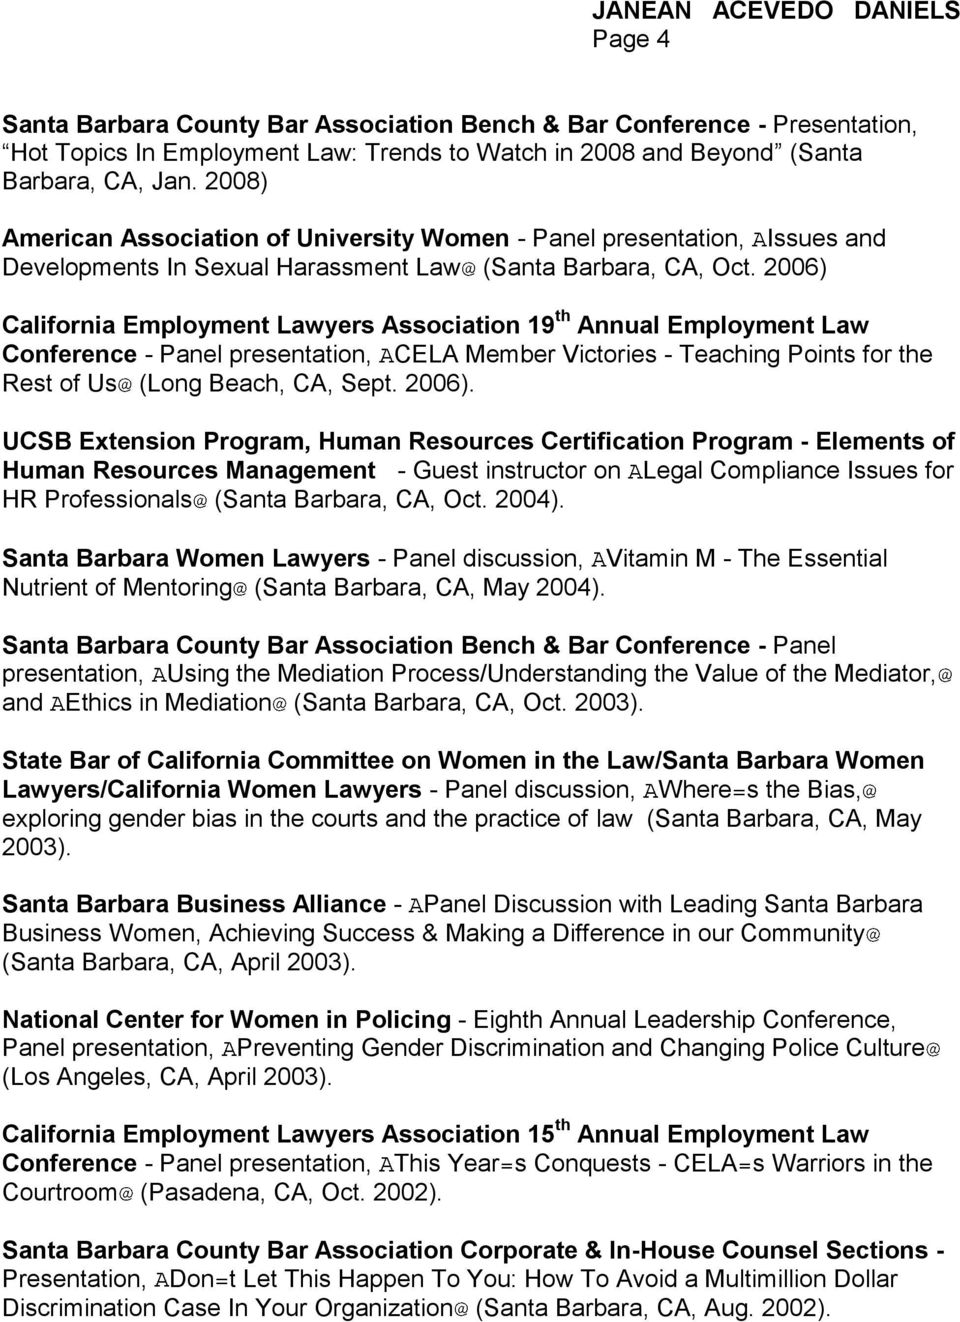 2006) California Employment Lawyers Association 19 th Annual Employment Law Conference - Panel presentation, CELA Member Victories - Teaching Points for the Rest of Us (Long Beach, CA, Sept. 2006).